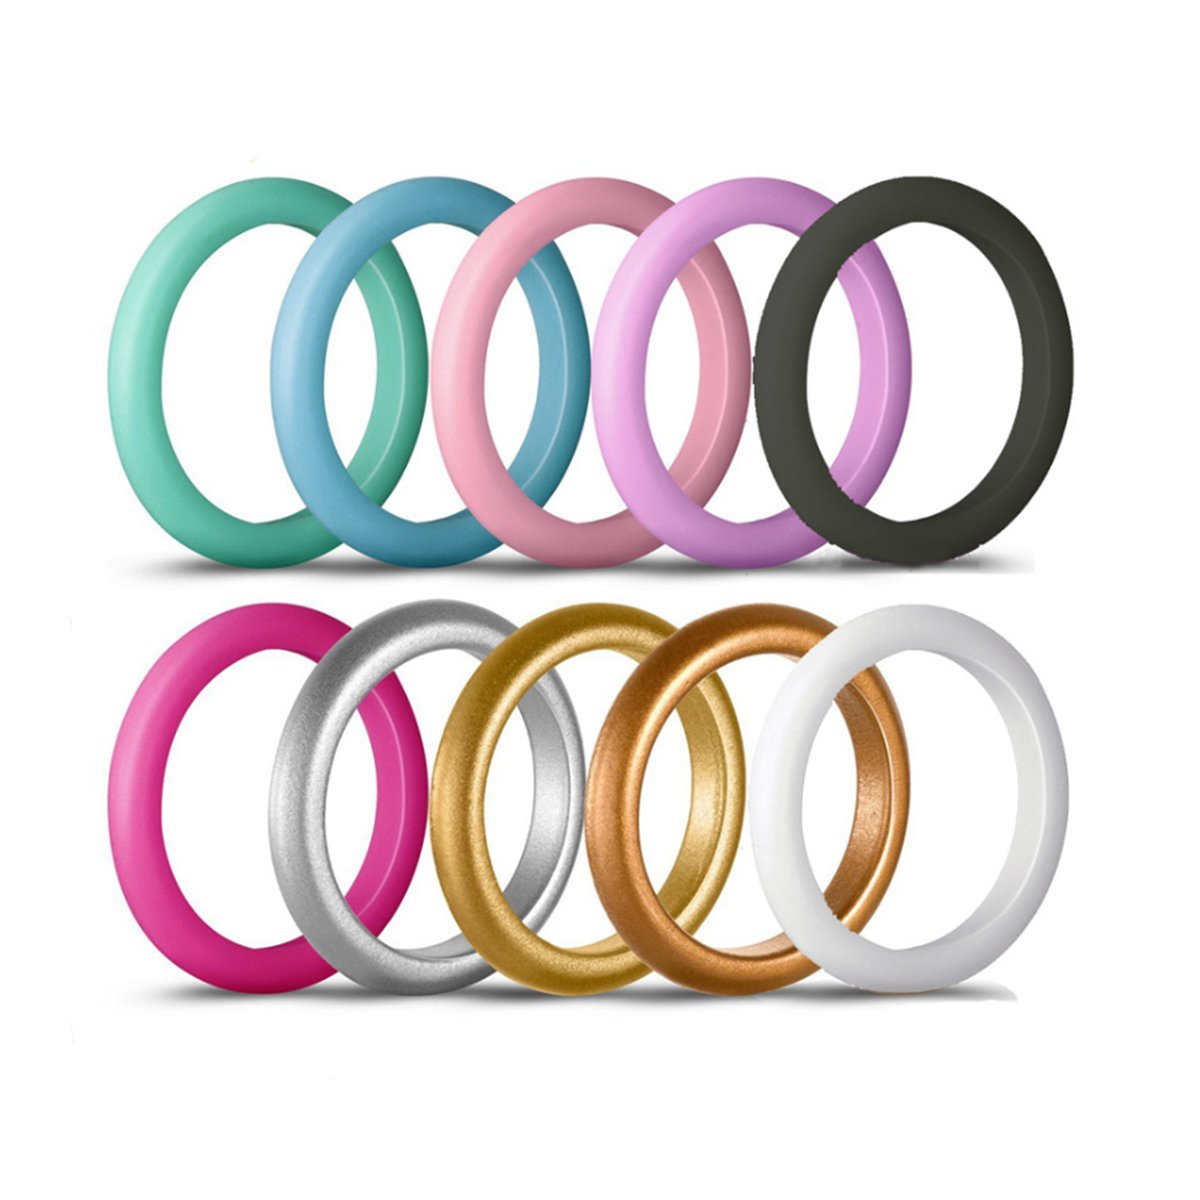 Shinelin Silicone Wedding Rings Rubber Bands Thin and Stackable Ring for Women 3mm Width 10 Pack (7) by Shinlin (Image #2)